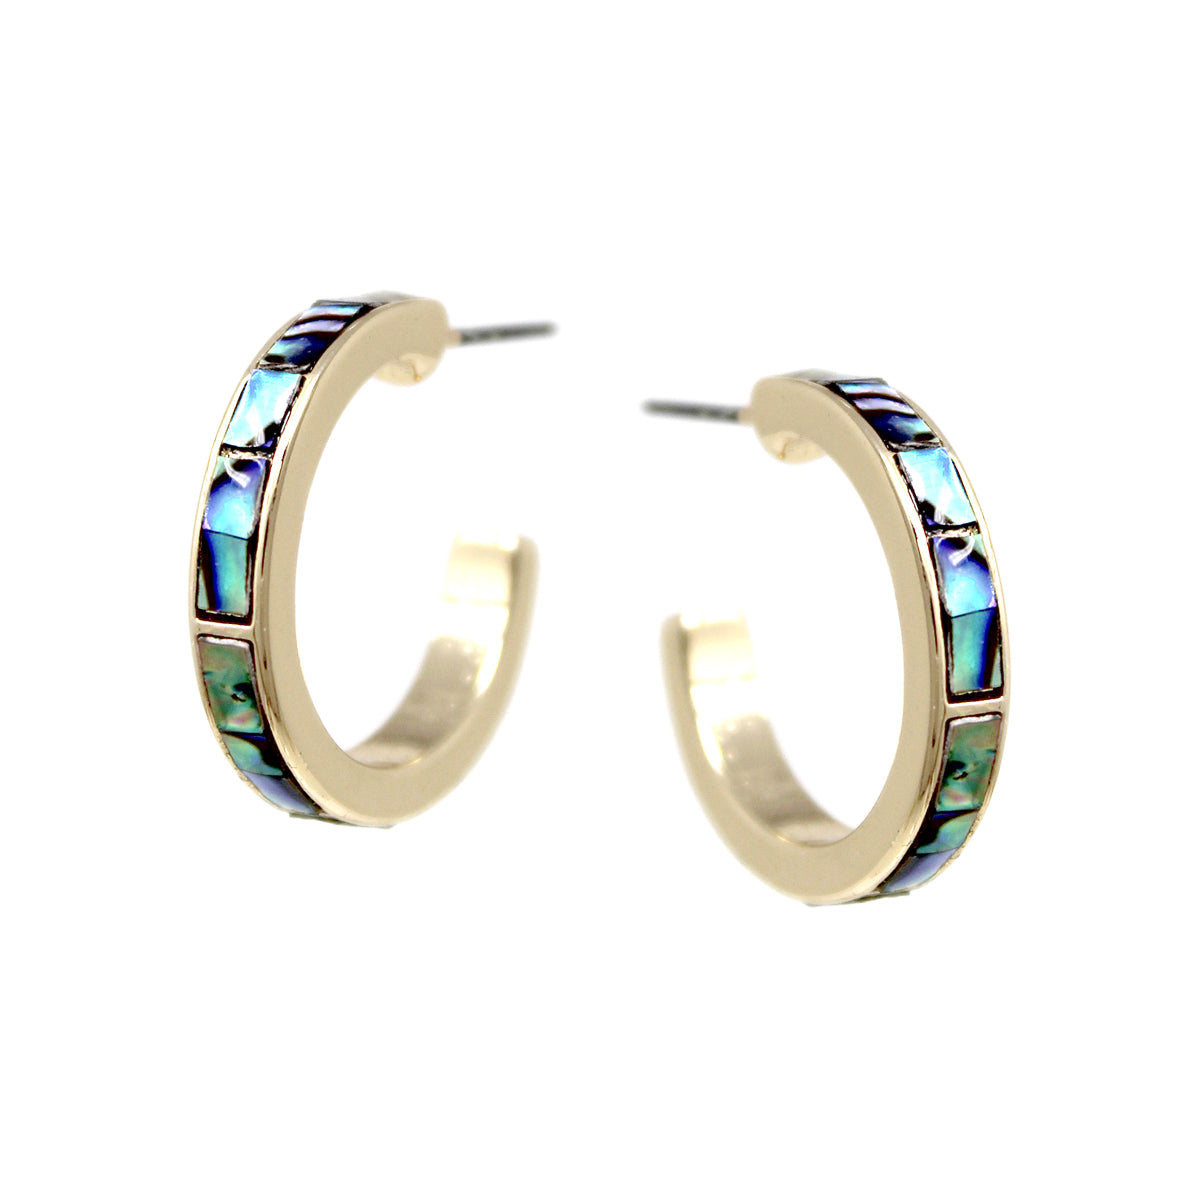 Genuine Abalone Edge Hoop Earrings